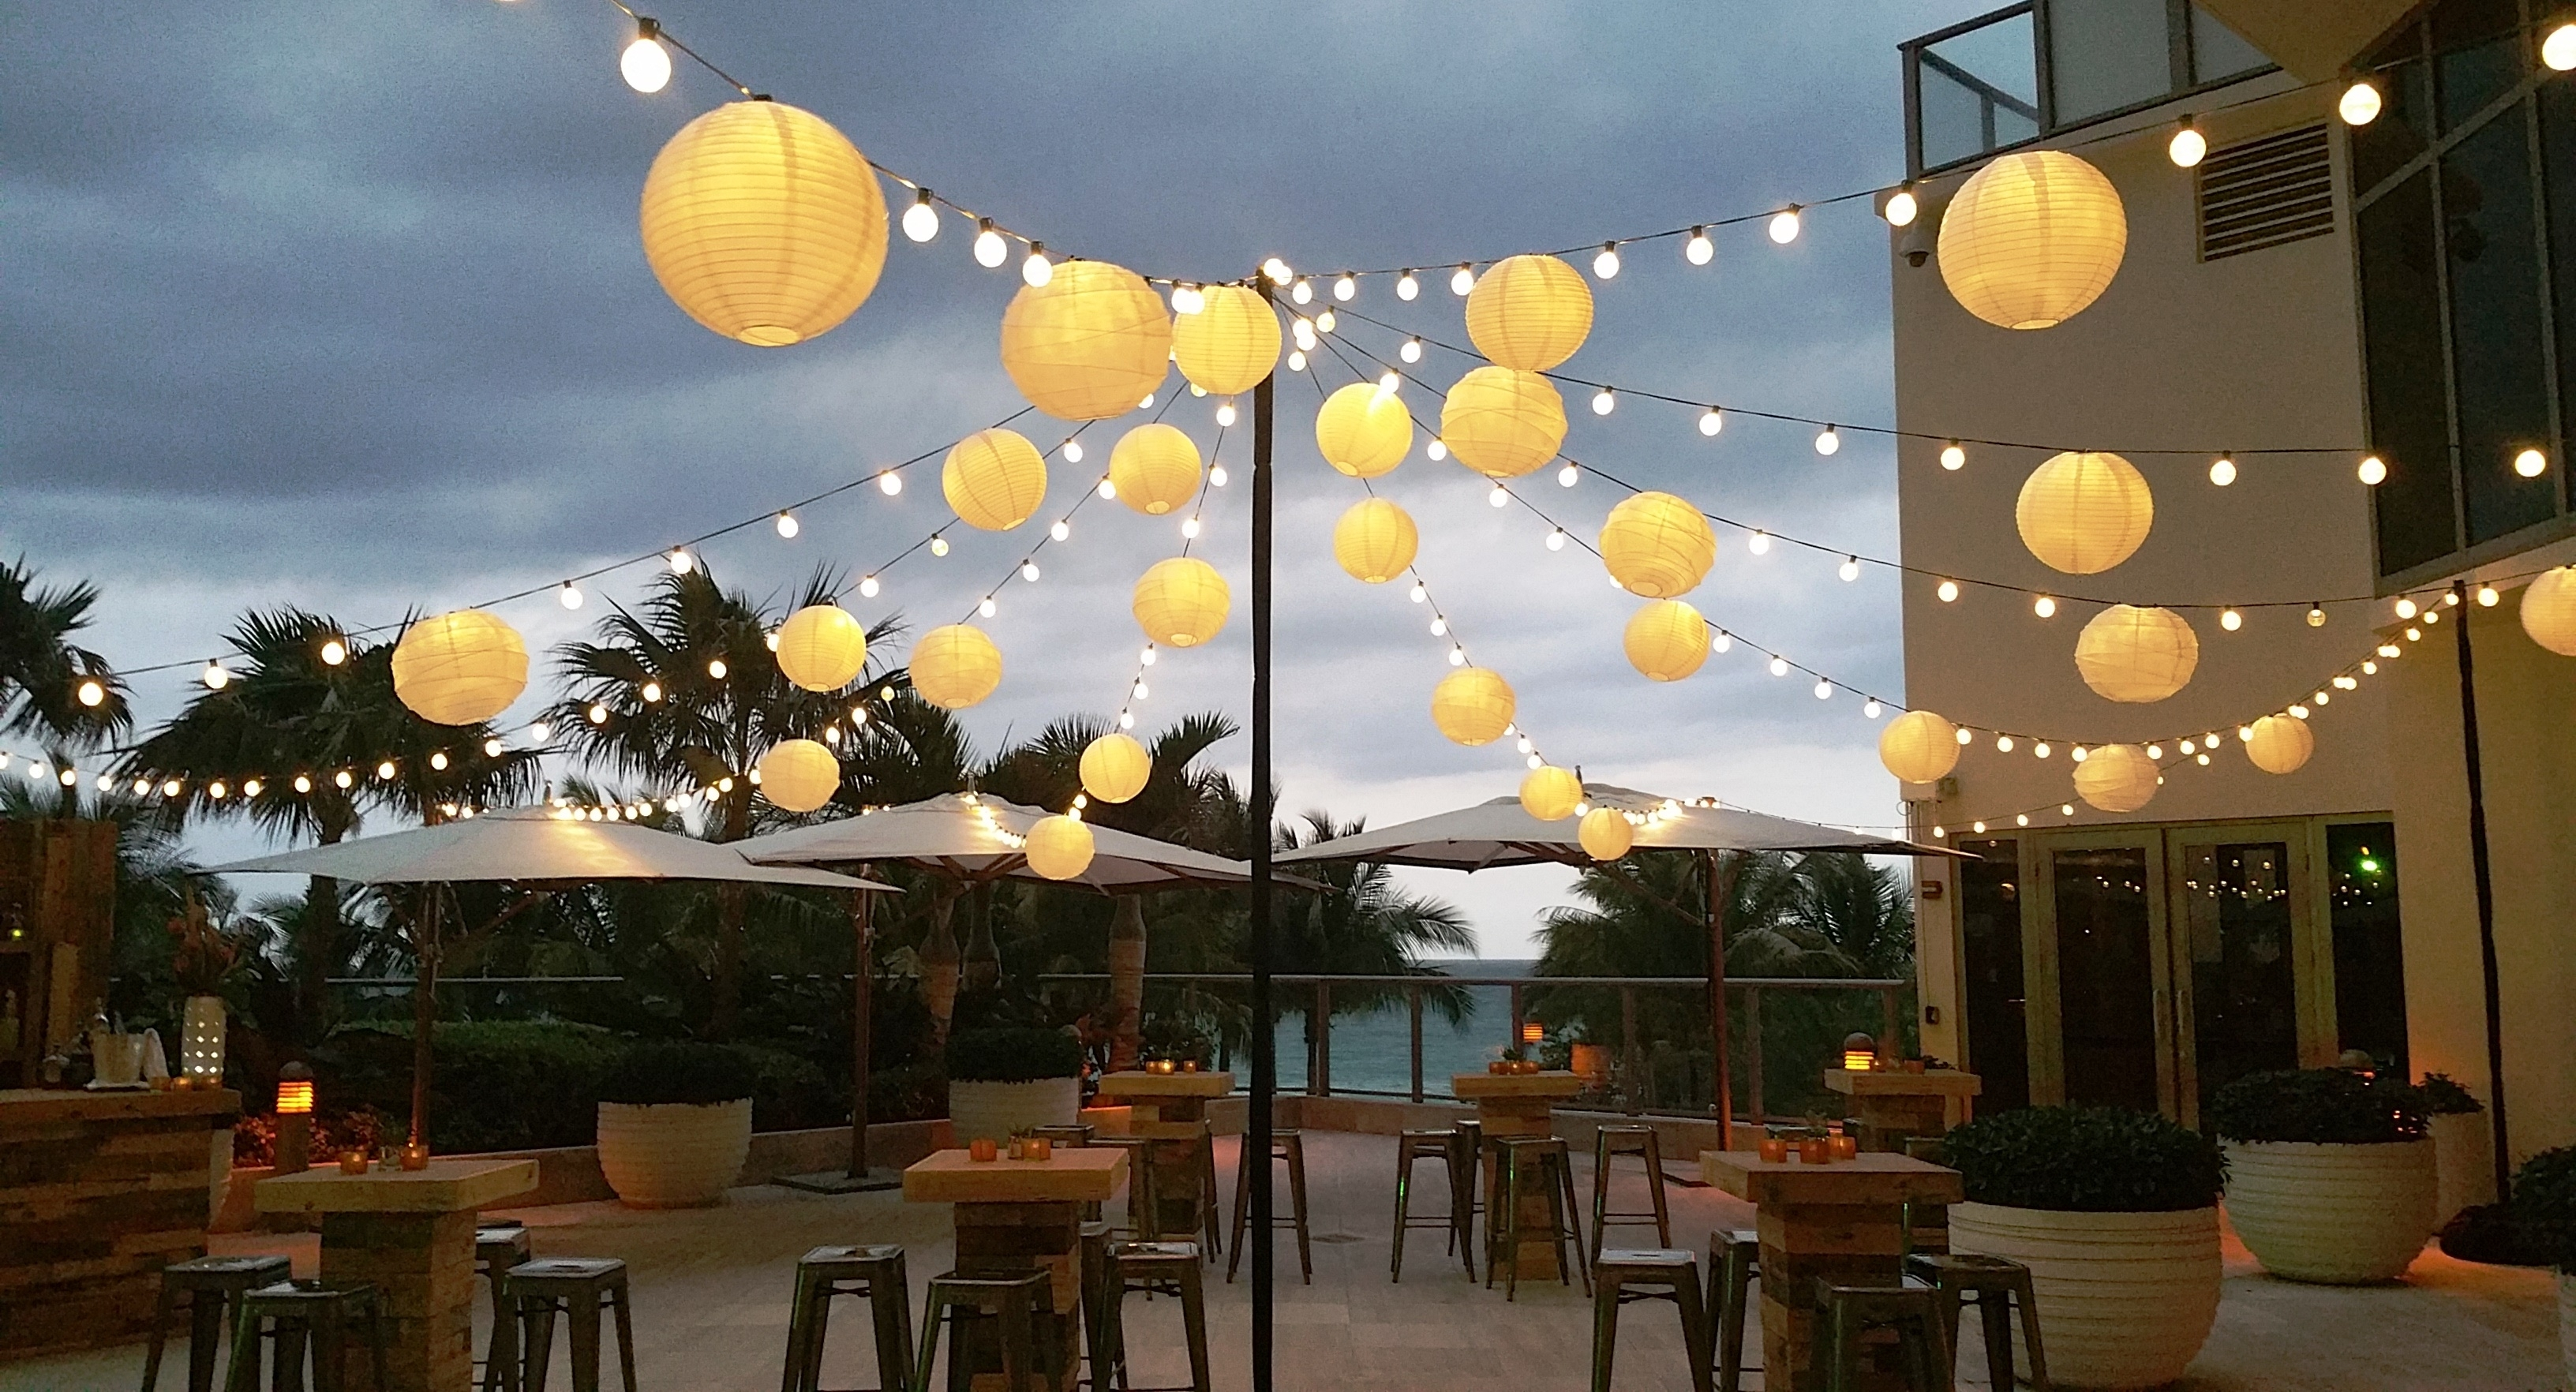 Inspiration about Decorating With Paper Lanterns Outdoors 28 Images X10 White Hanging Regarding Outdoor Hanging Paper Lanterns (#1 of 15)